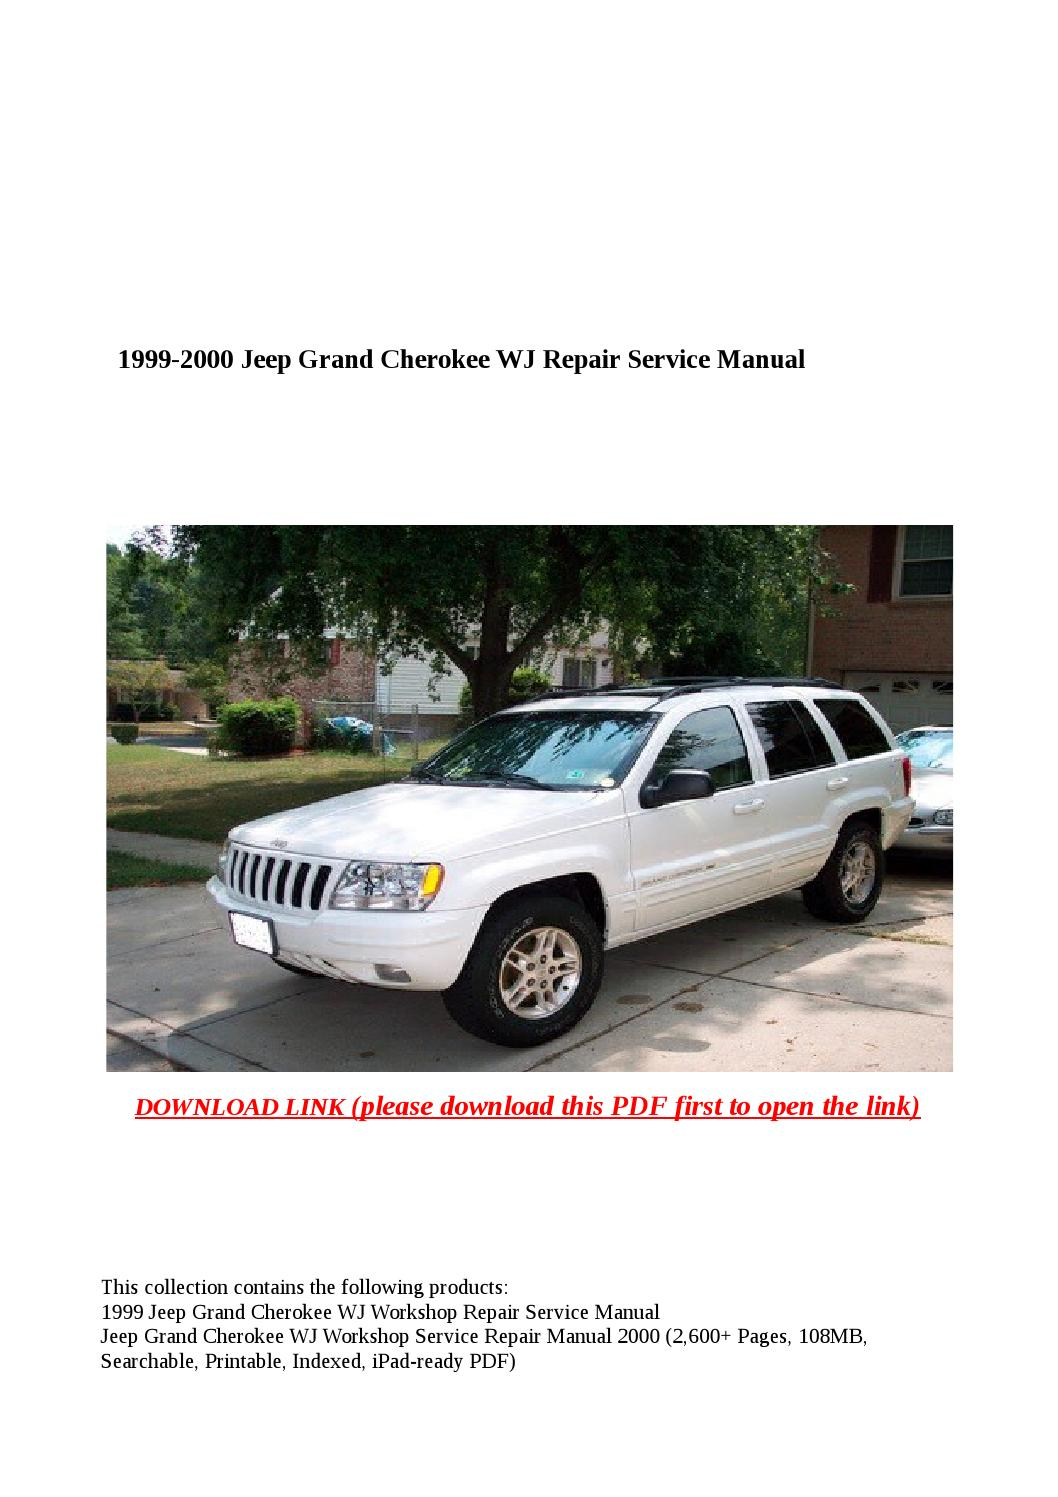 1999 2000 jeep grand cherokee wj repair service manual by Anna Tang - issuu